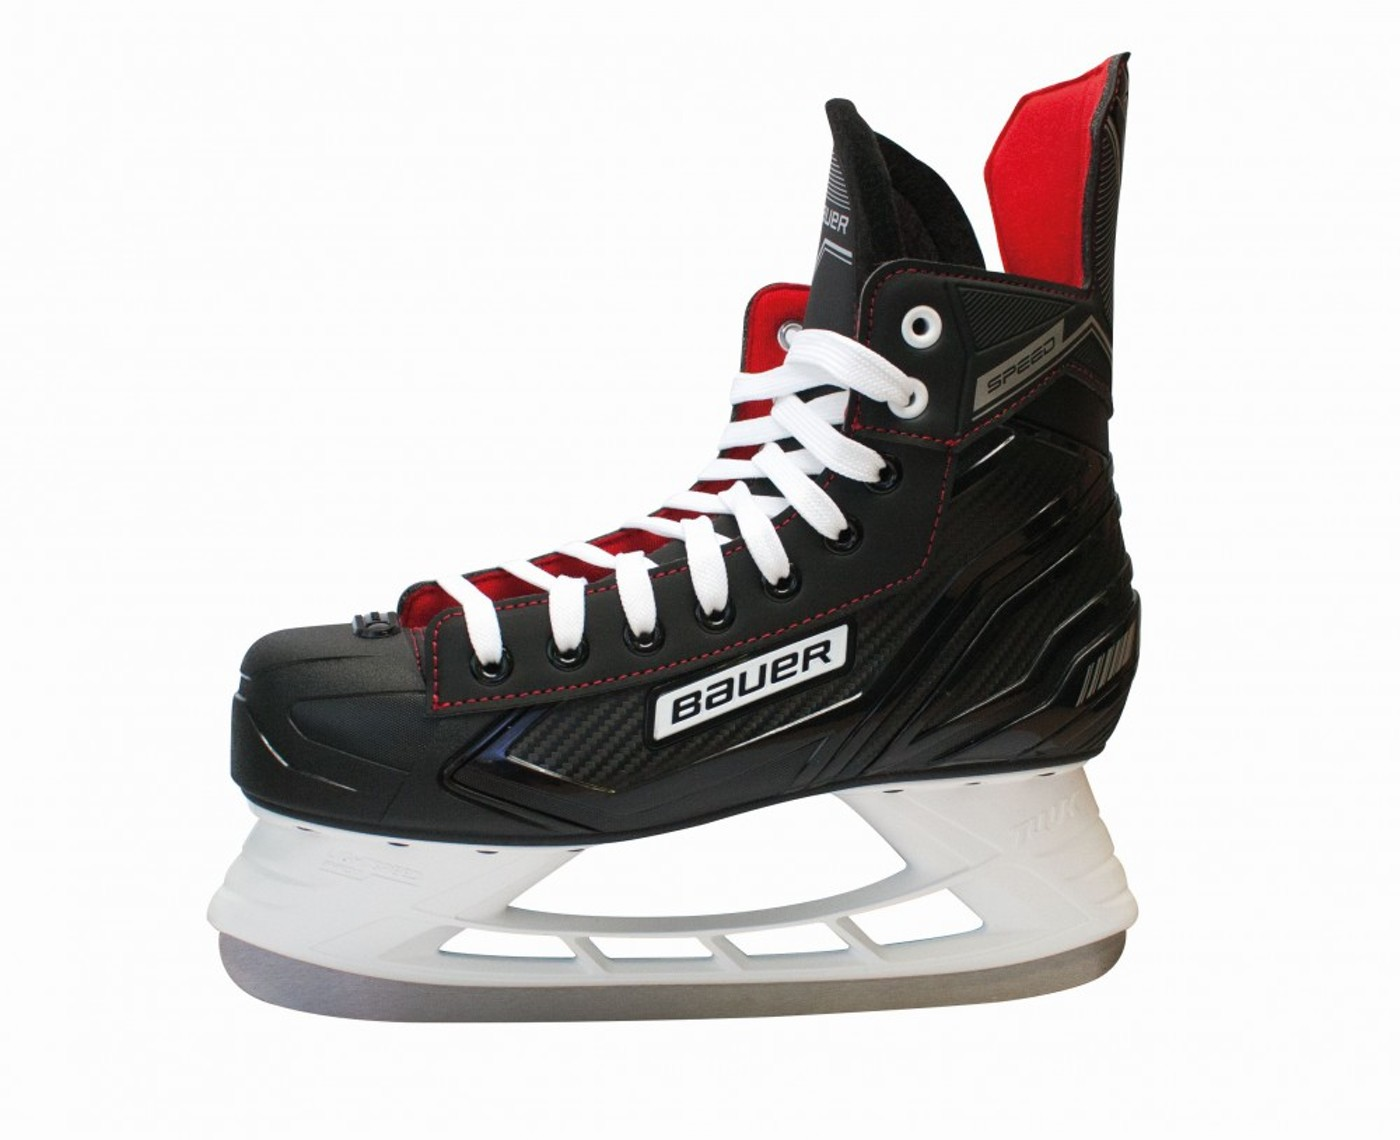 BAUER SPEED SKATE